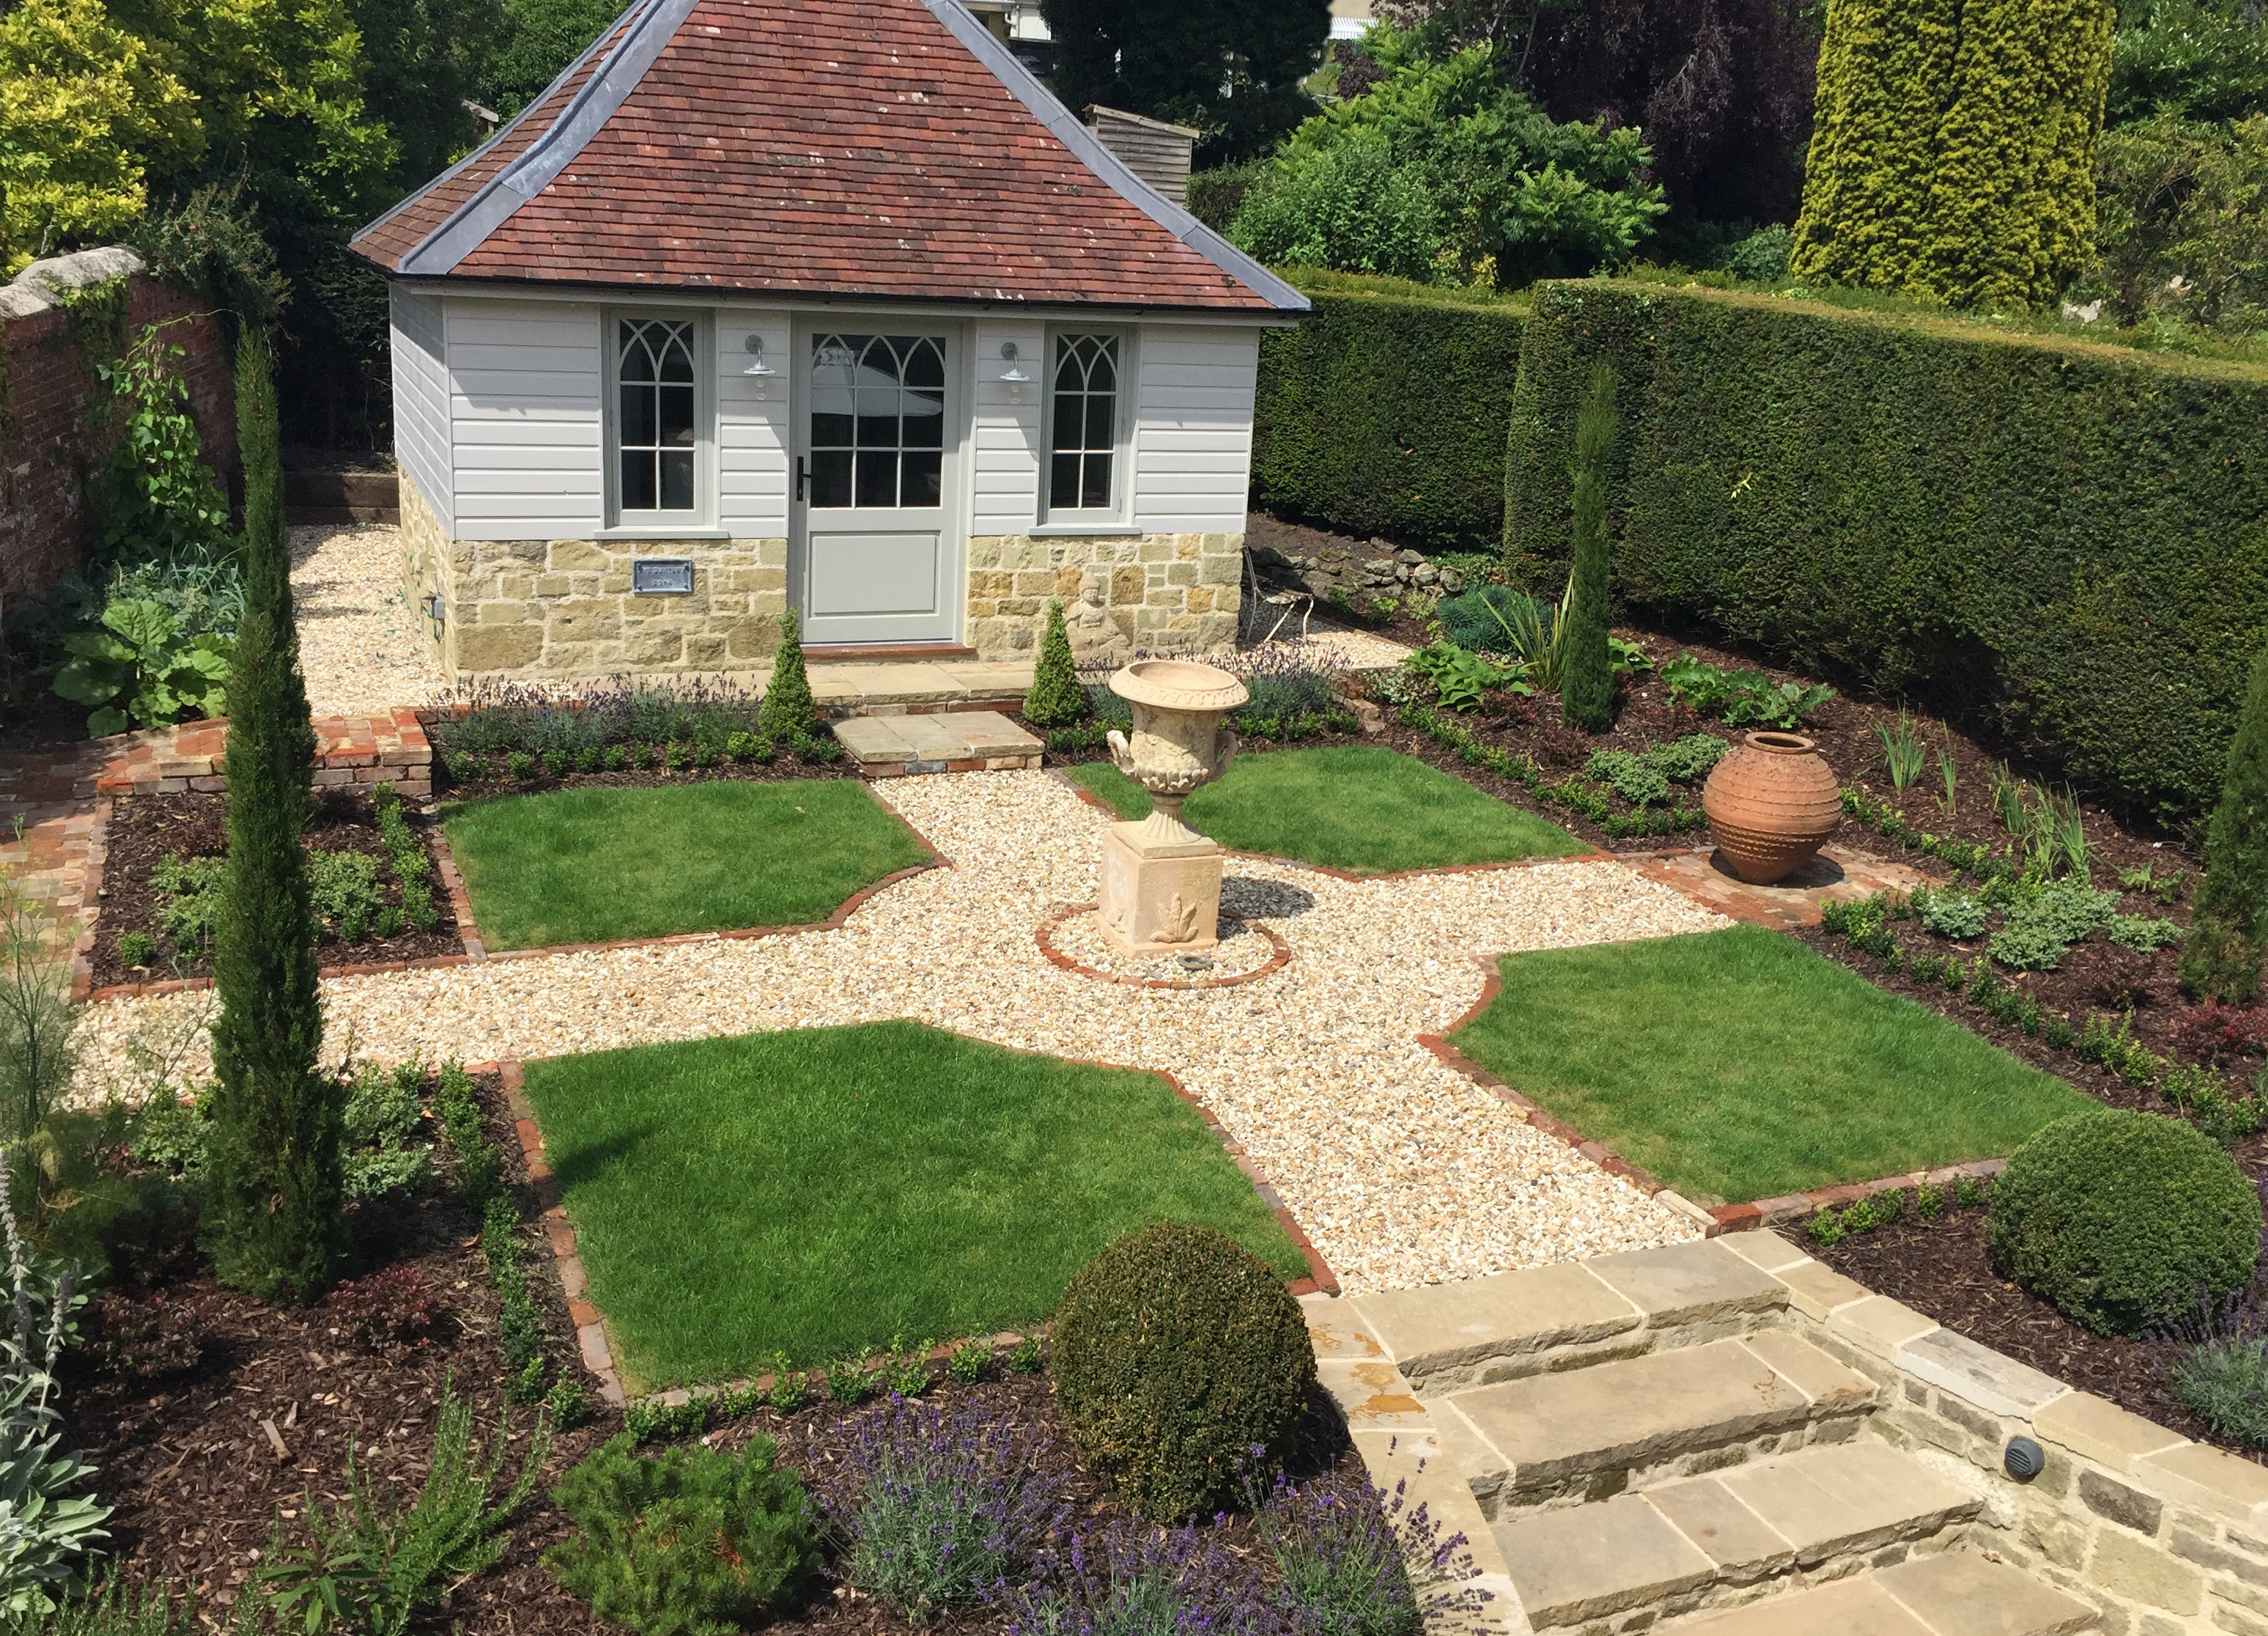 The completed Small formal garden